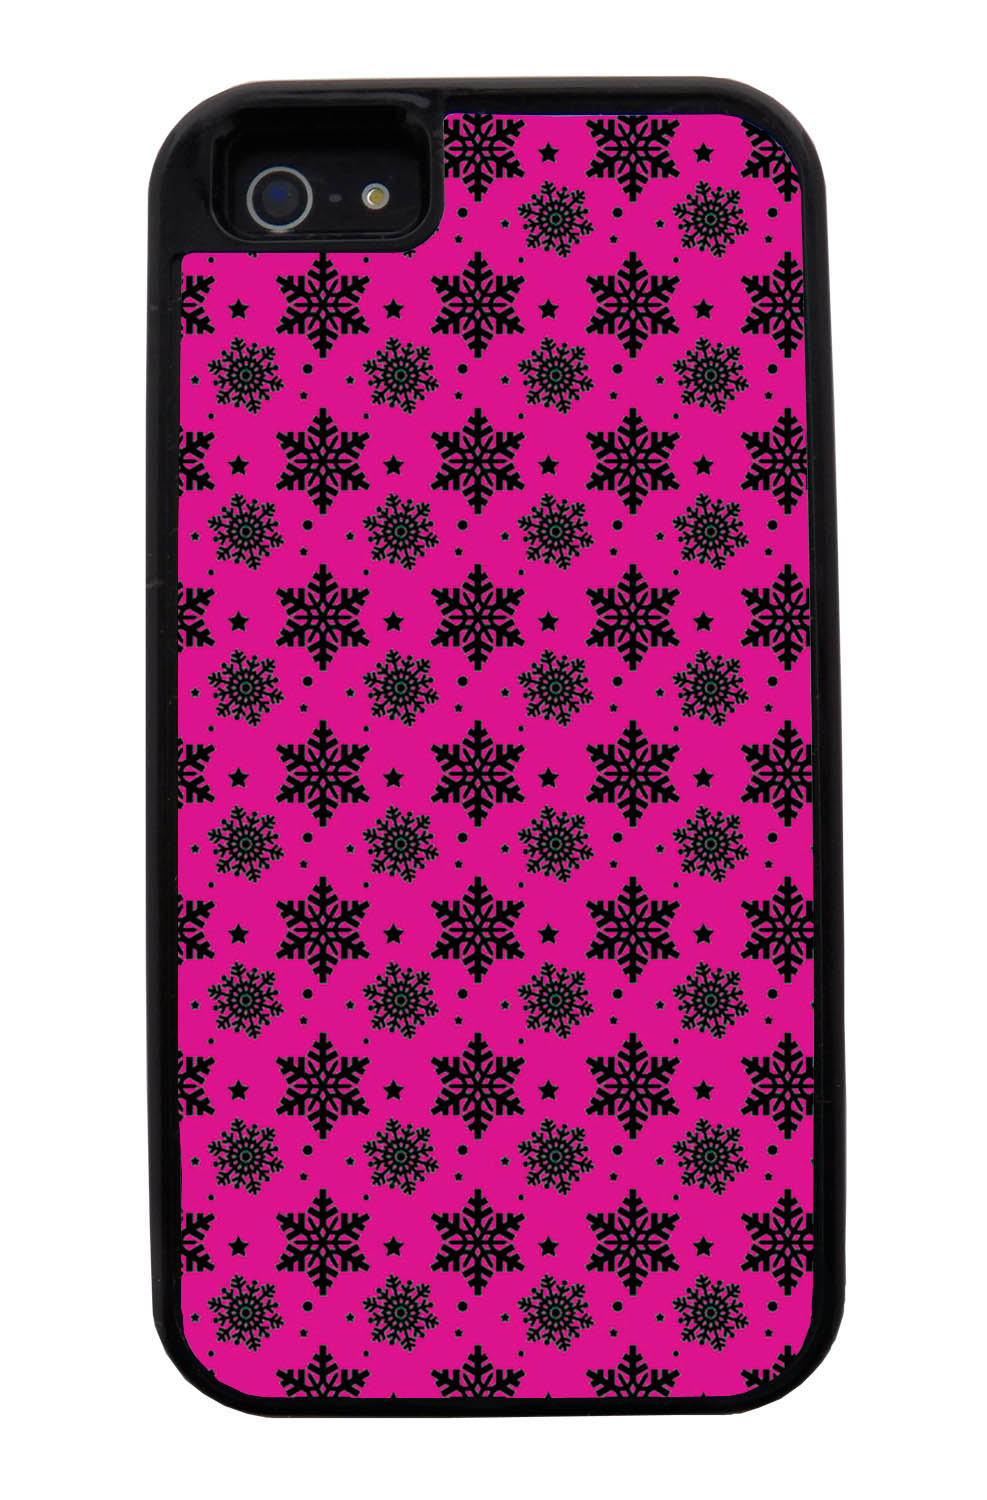 Apple iPhone 5 / 5S Pink Case - Black Snowflakes on Hot Pink - Fall And Winter - Black Tough Hybrid Case